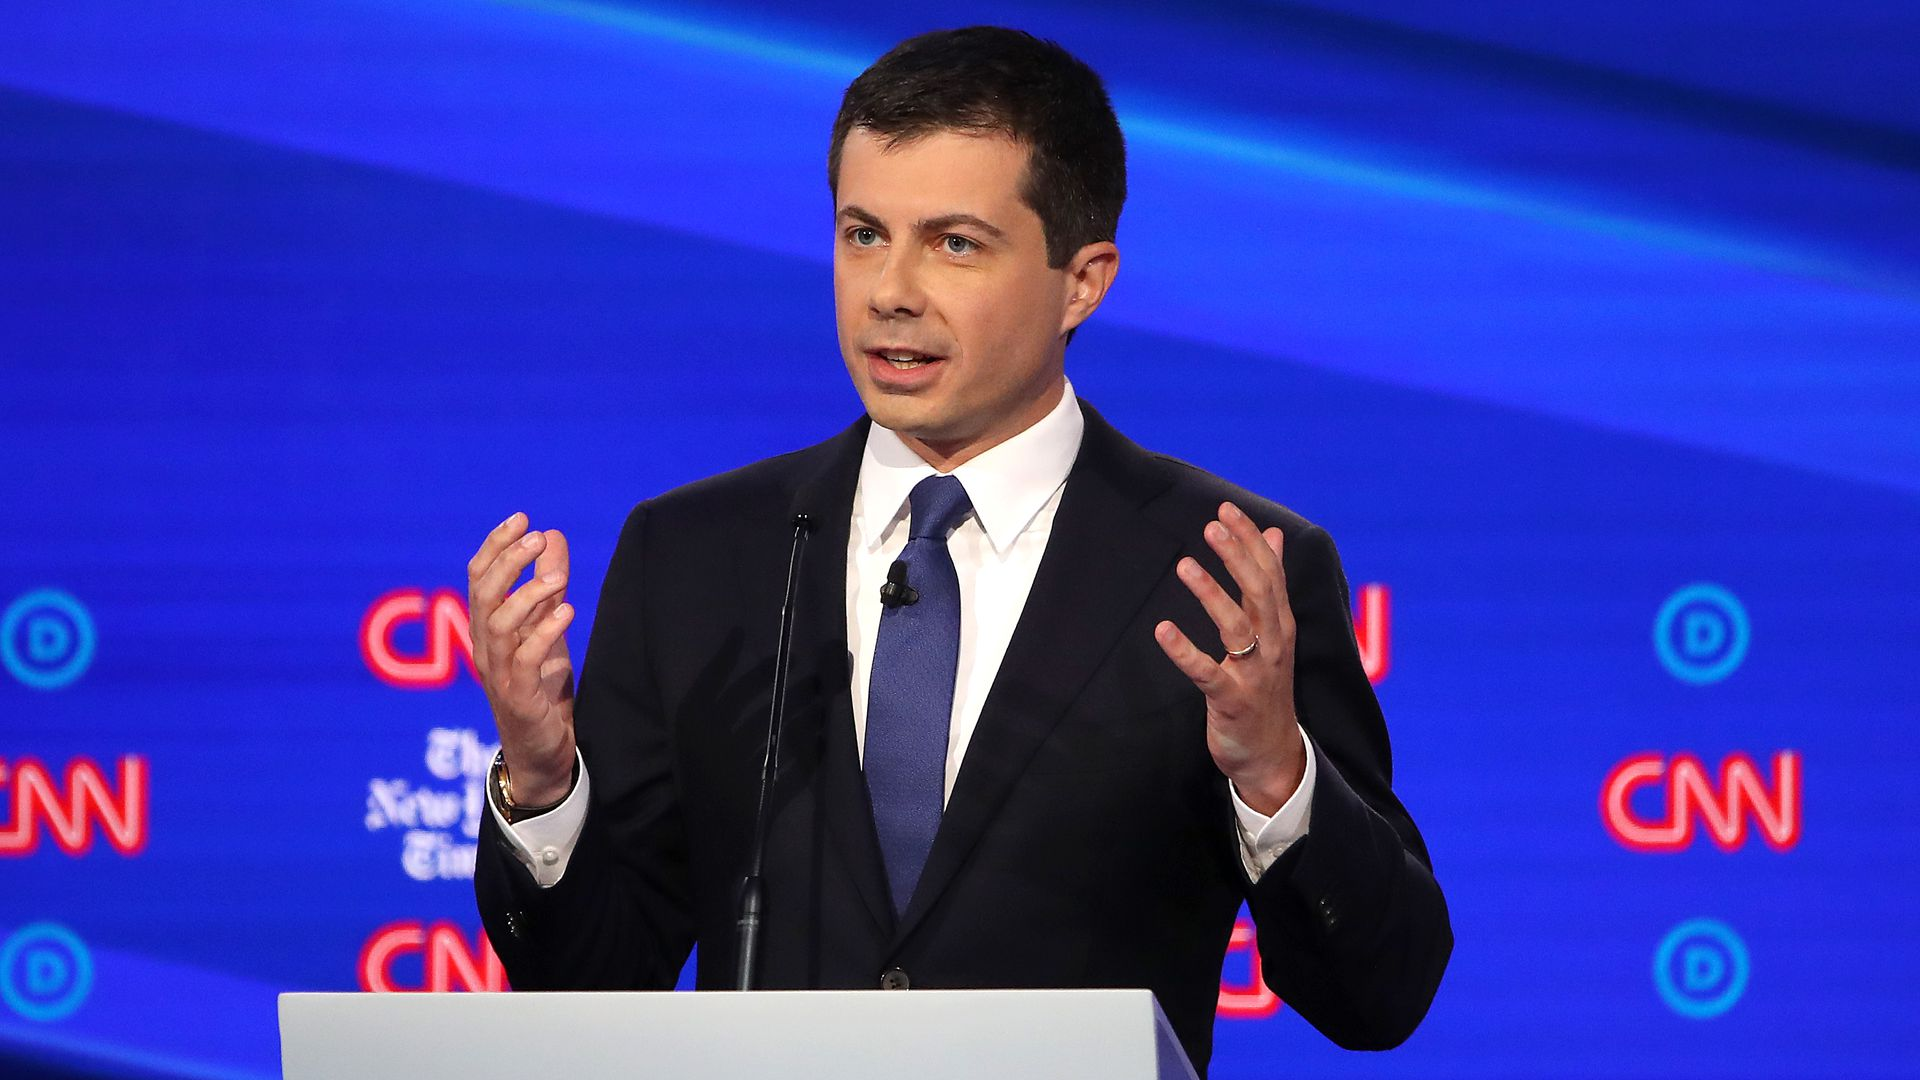 South Bend, Indiana Mayor Pete Buttigieg speaks during the Democratic Presidential Debate at Otterbein University on October 15, 2019 in Westerville, Ohio.